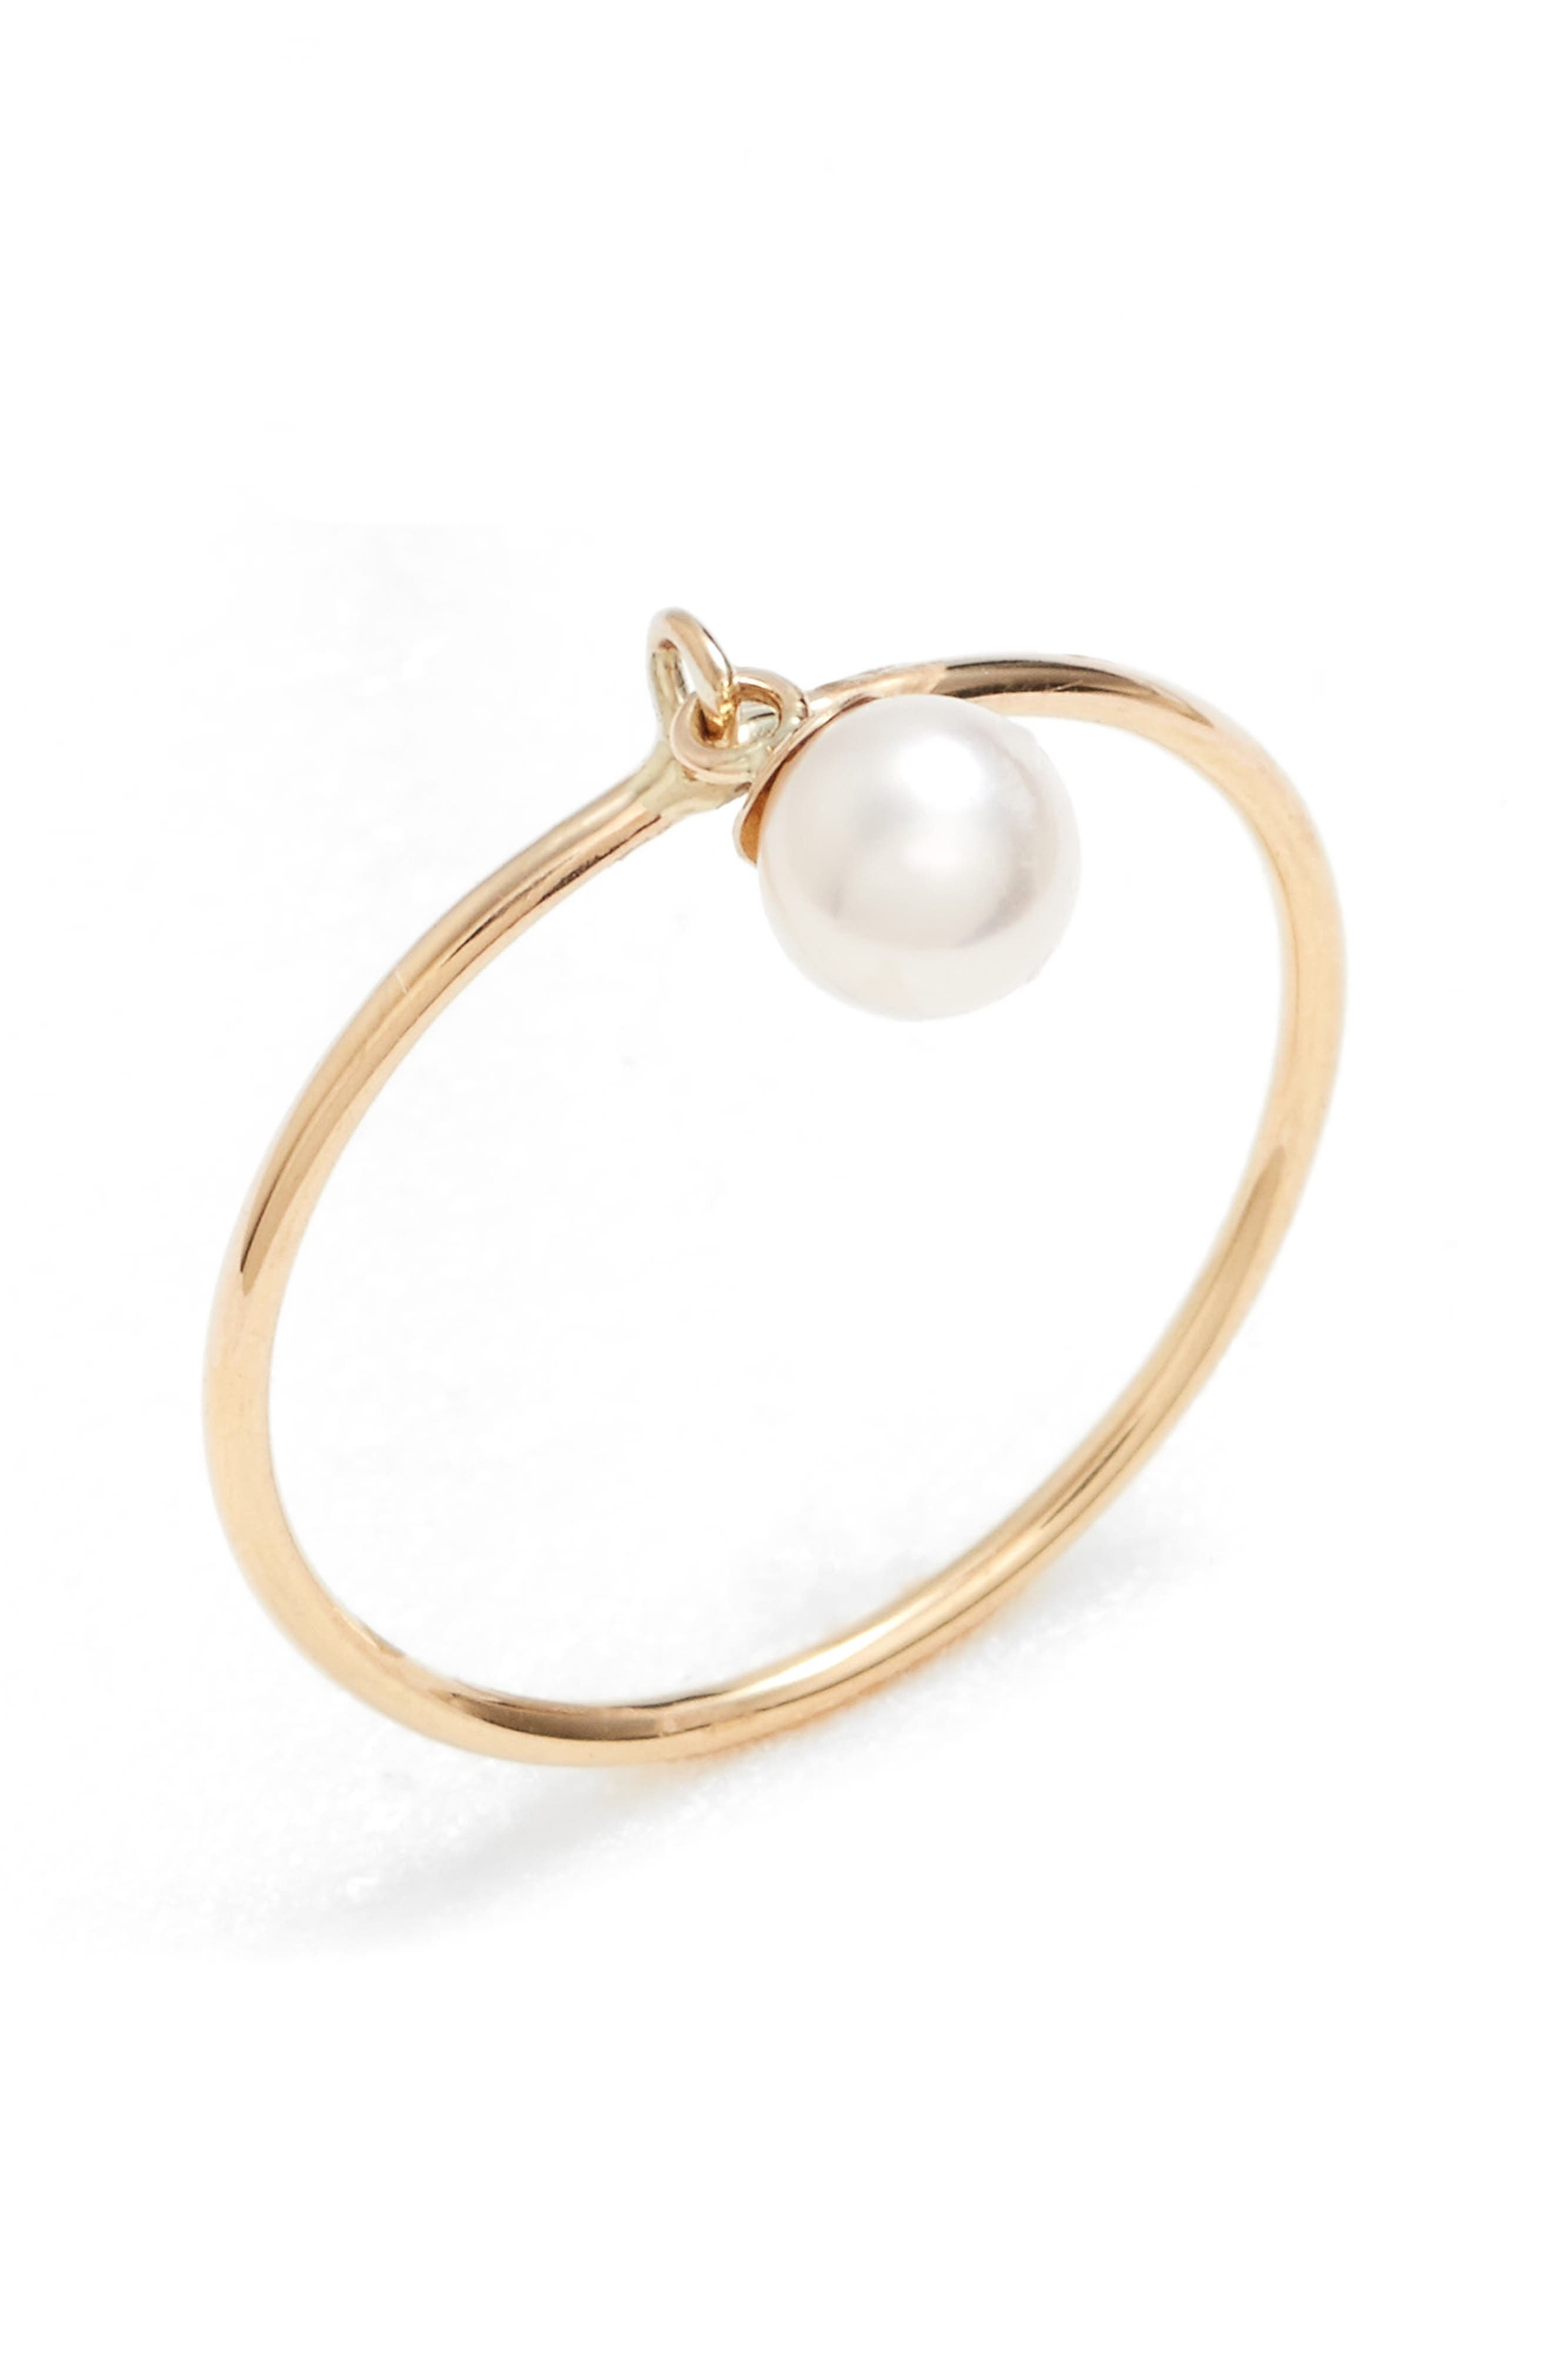 Dangling Pearl Charm Ring,                             Main thumbnail 1, color,                             YELLOW GOLD/ WHITE PEARL